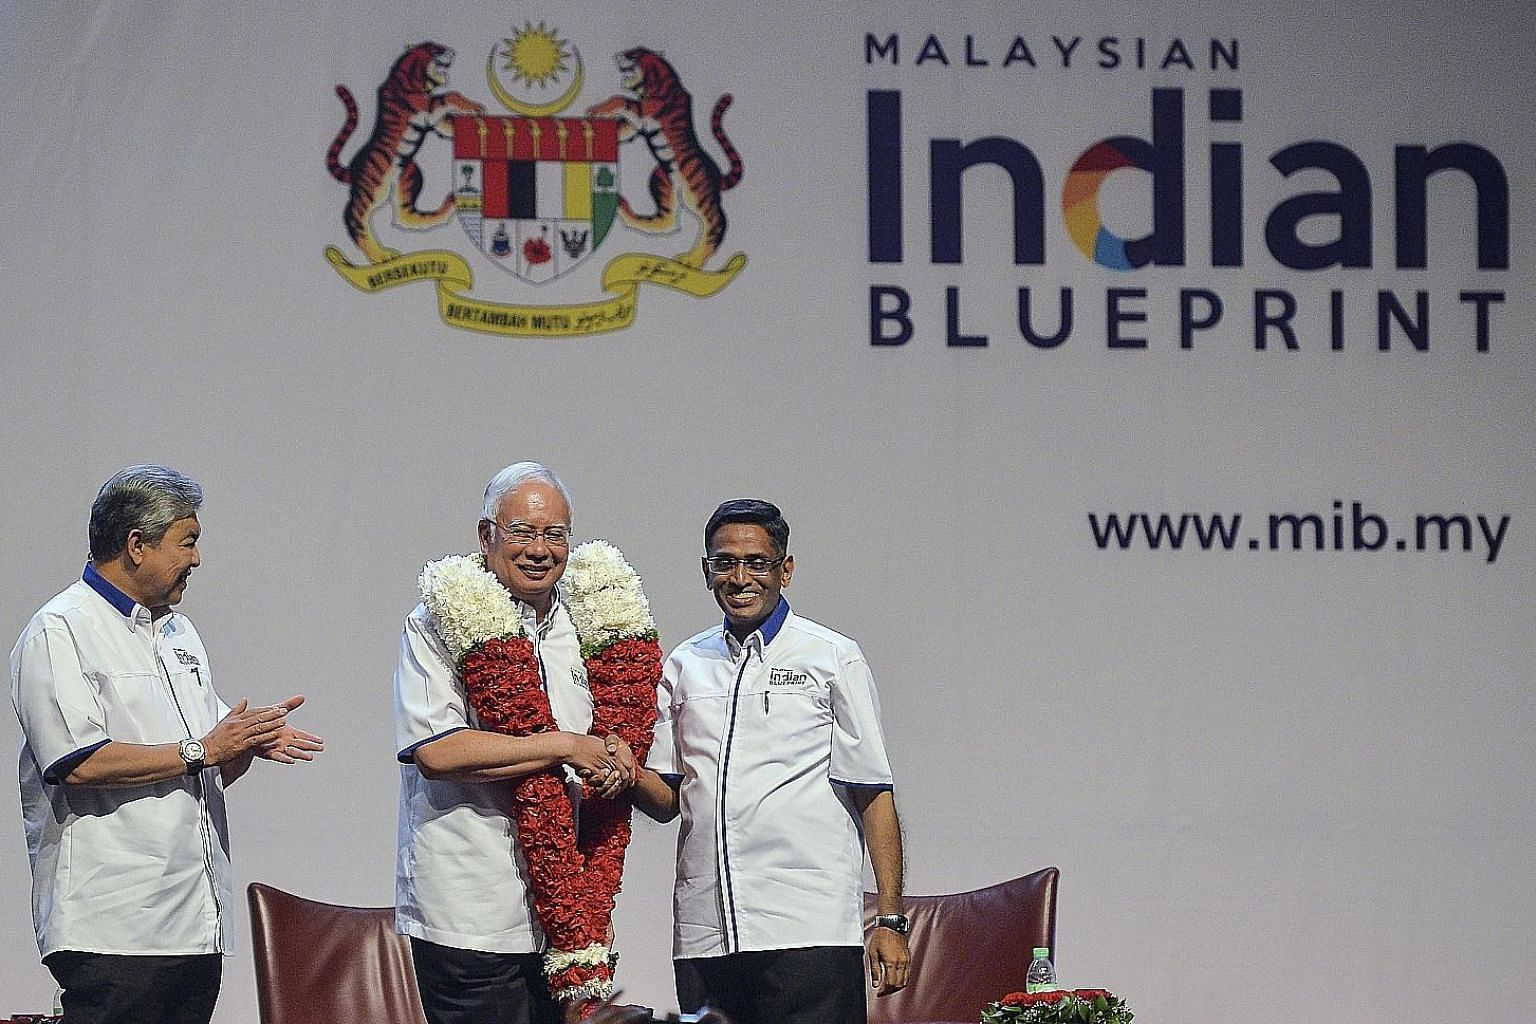 Malaysian Prime Minister Najib Razak flanked by MIC president S. Subramaniam (right) and Deputy Prime Minister Ahmad Zahid Hamidi at the announcement of the blueprint for the country's Indian community on Sunday.